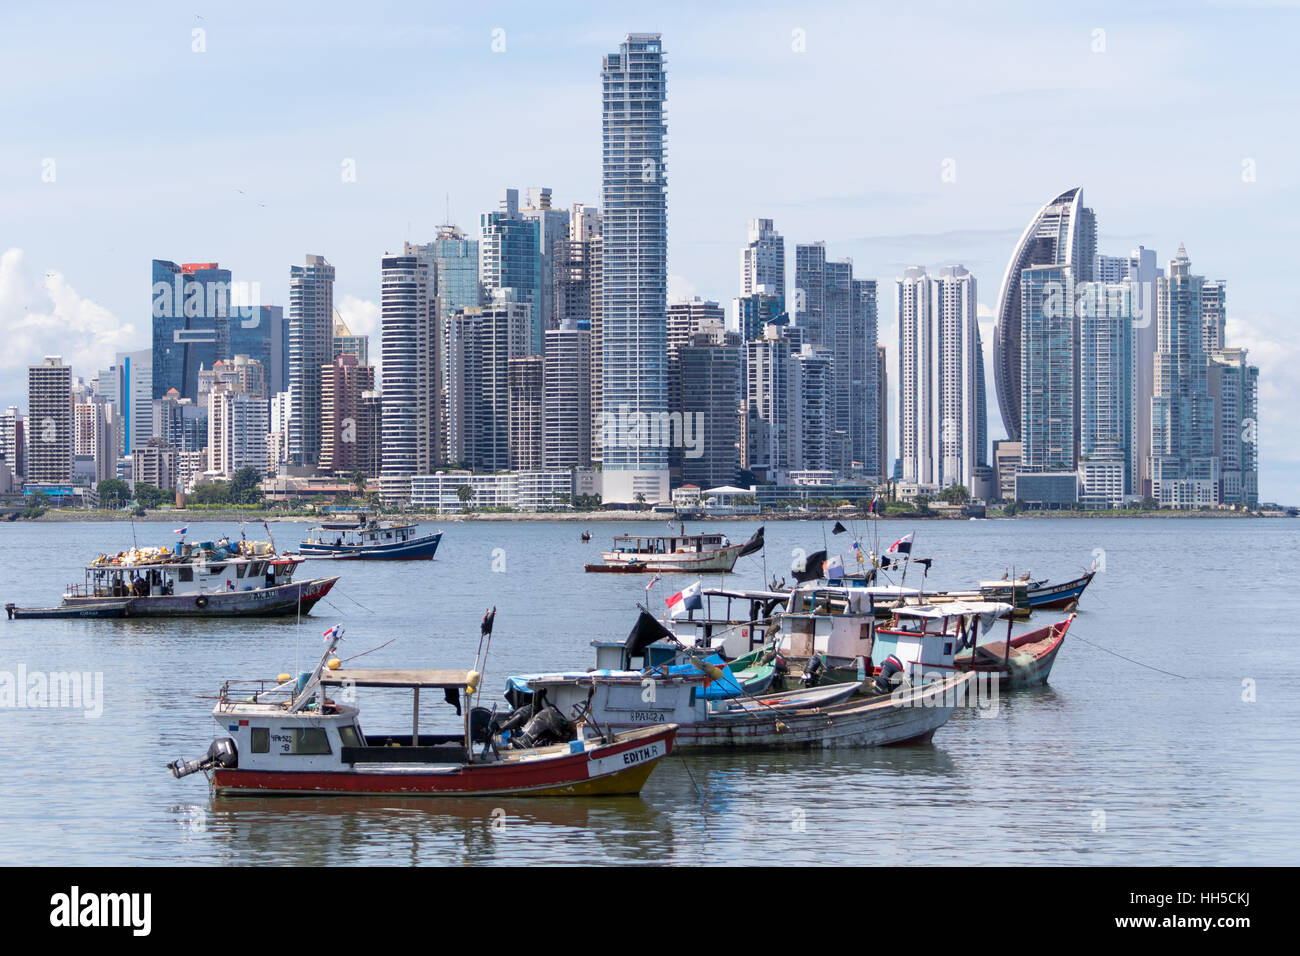 June 15, 2016 Panama City, Panama: small fishing boats floating on the water with the modern downtown high-rises - Stock Image